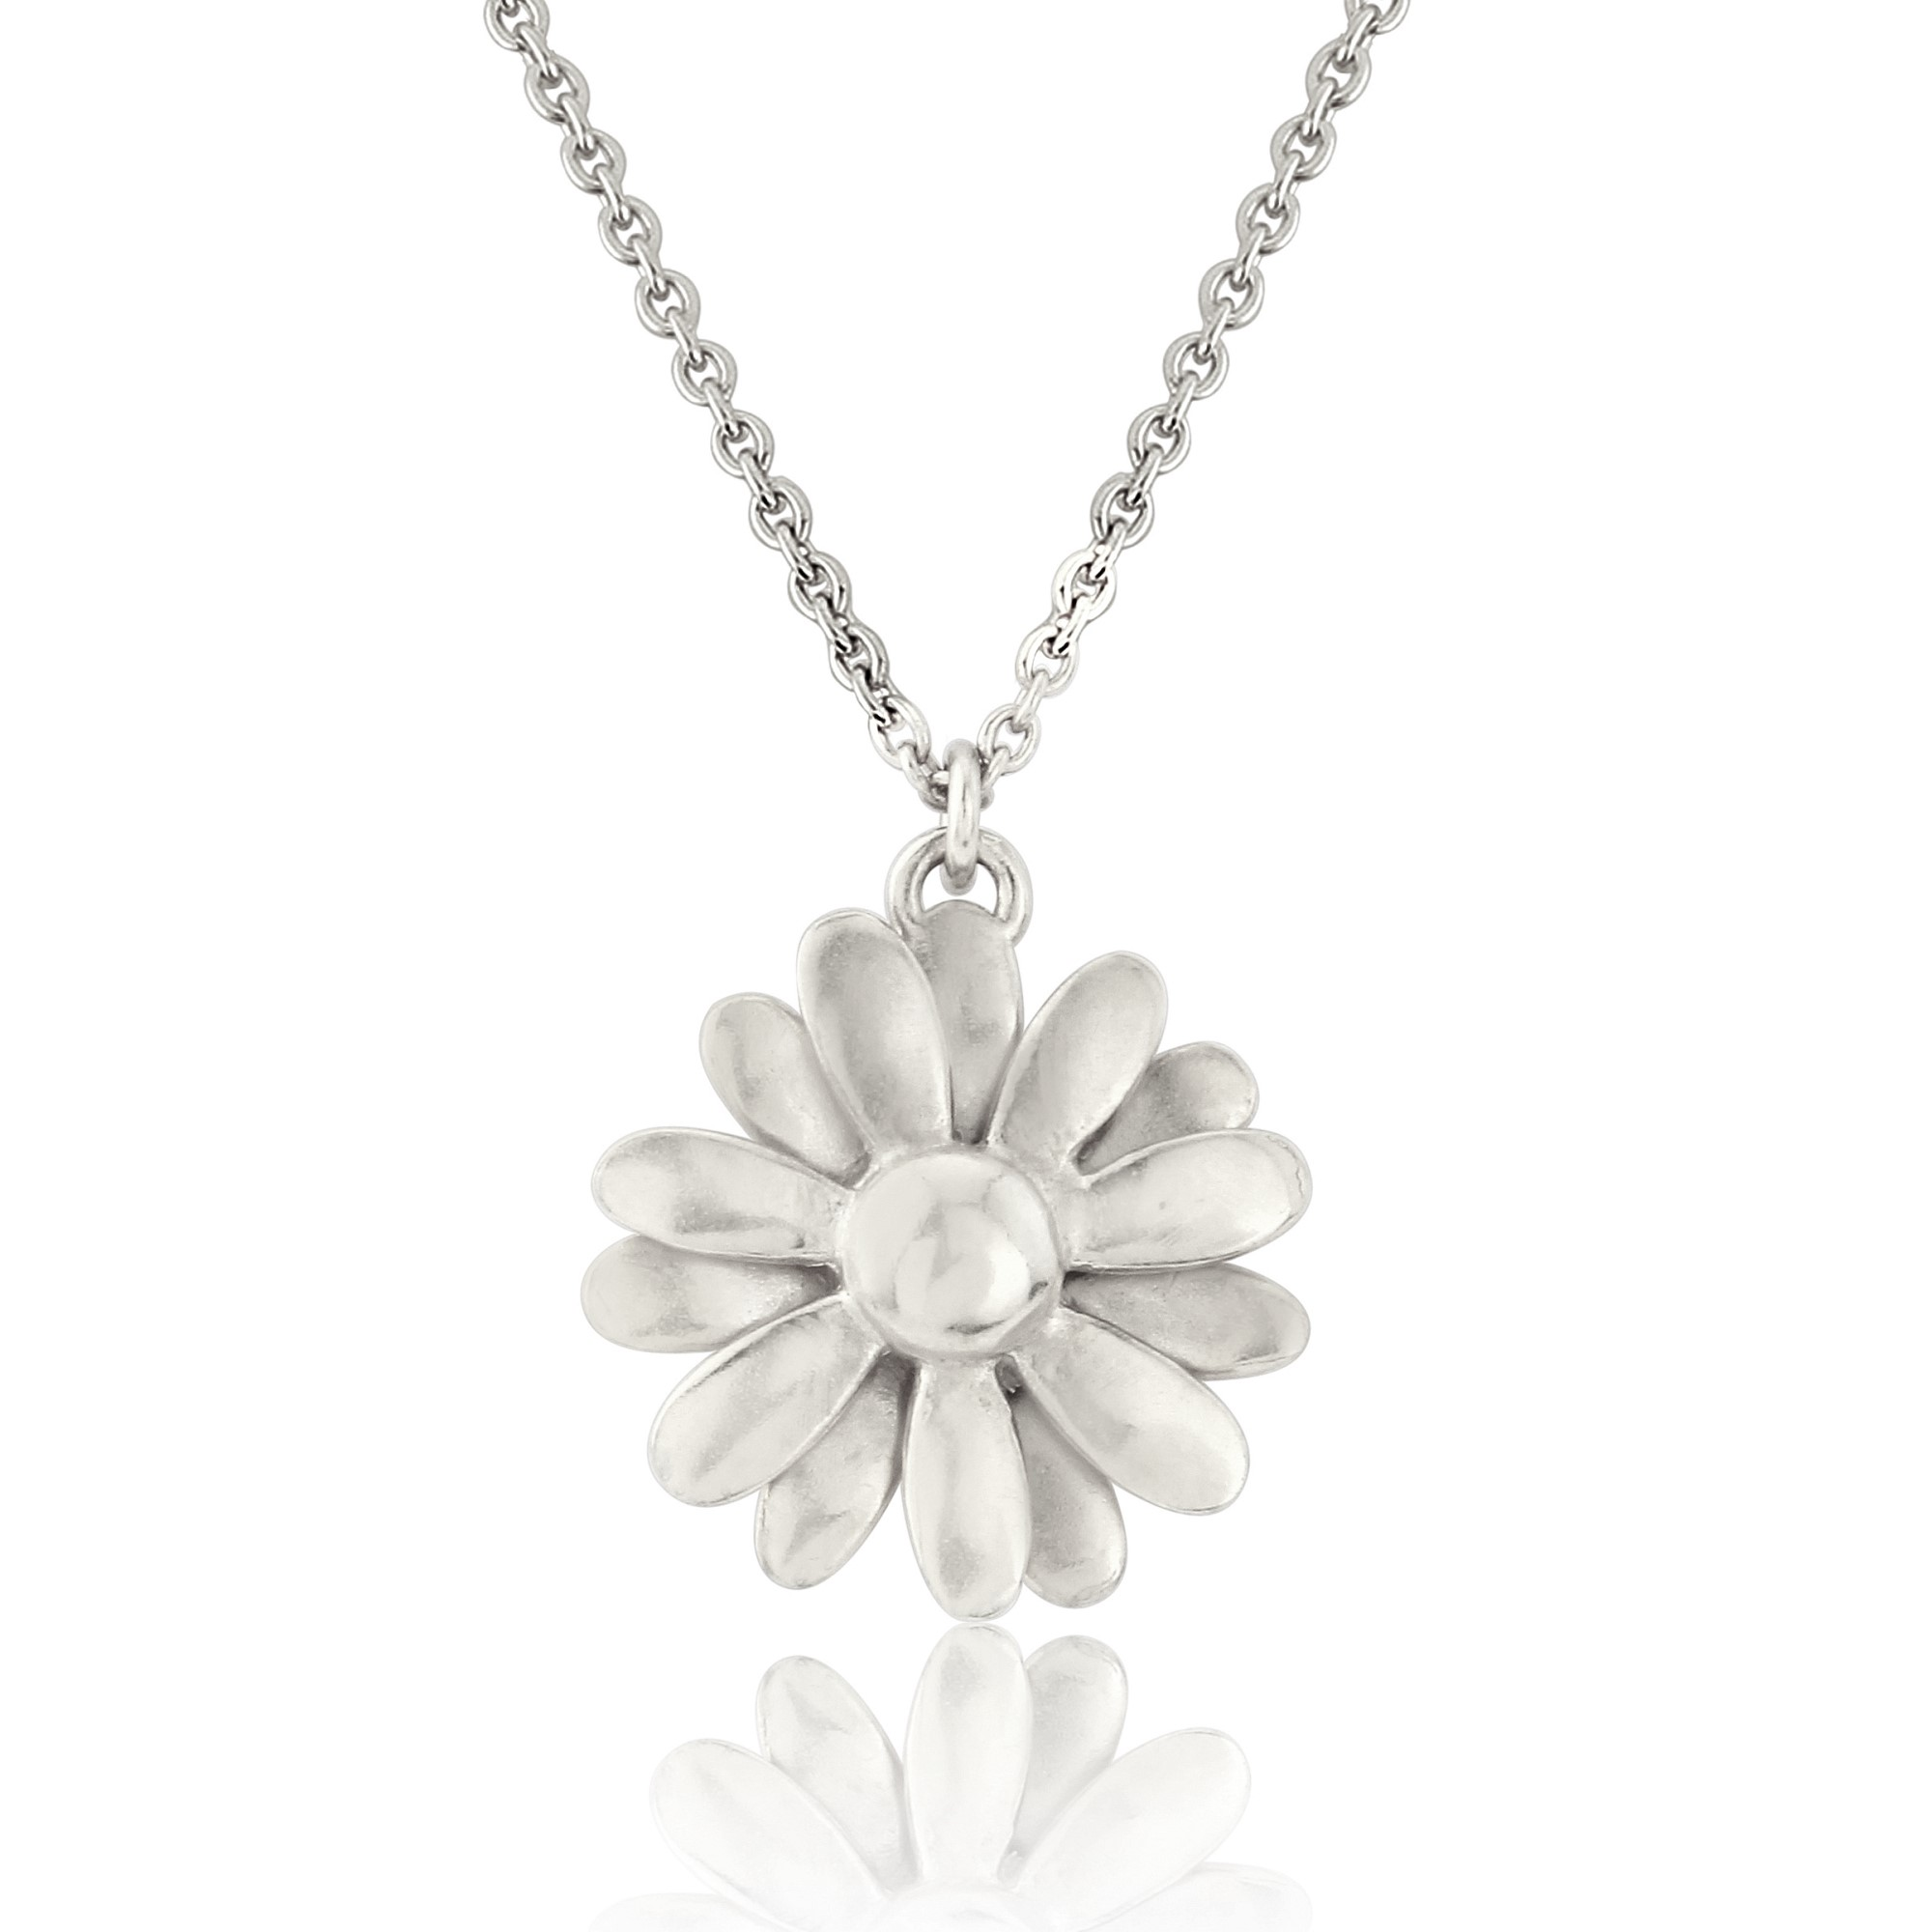 co of jewellery tuscany uk white on amazon yellow daisy and sterling chain pendant necklace dp silver